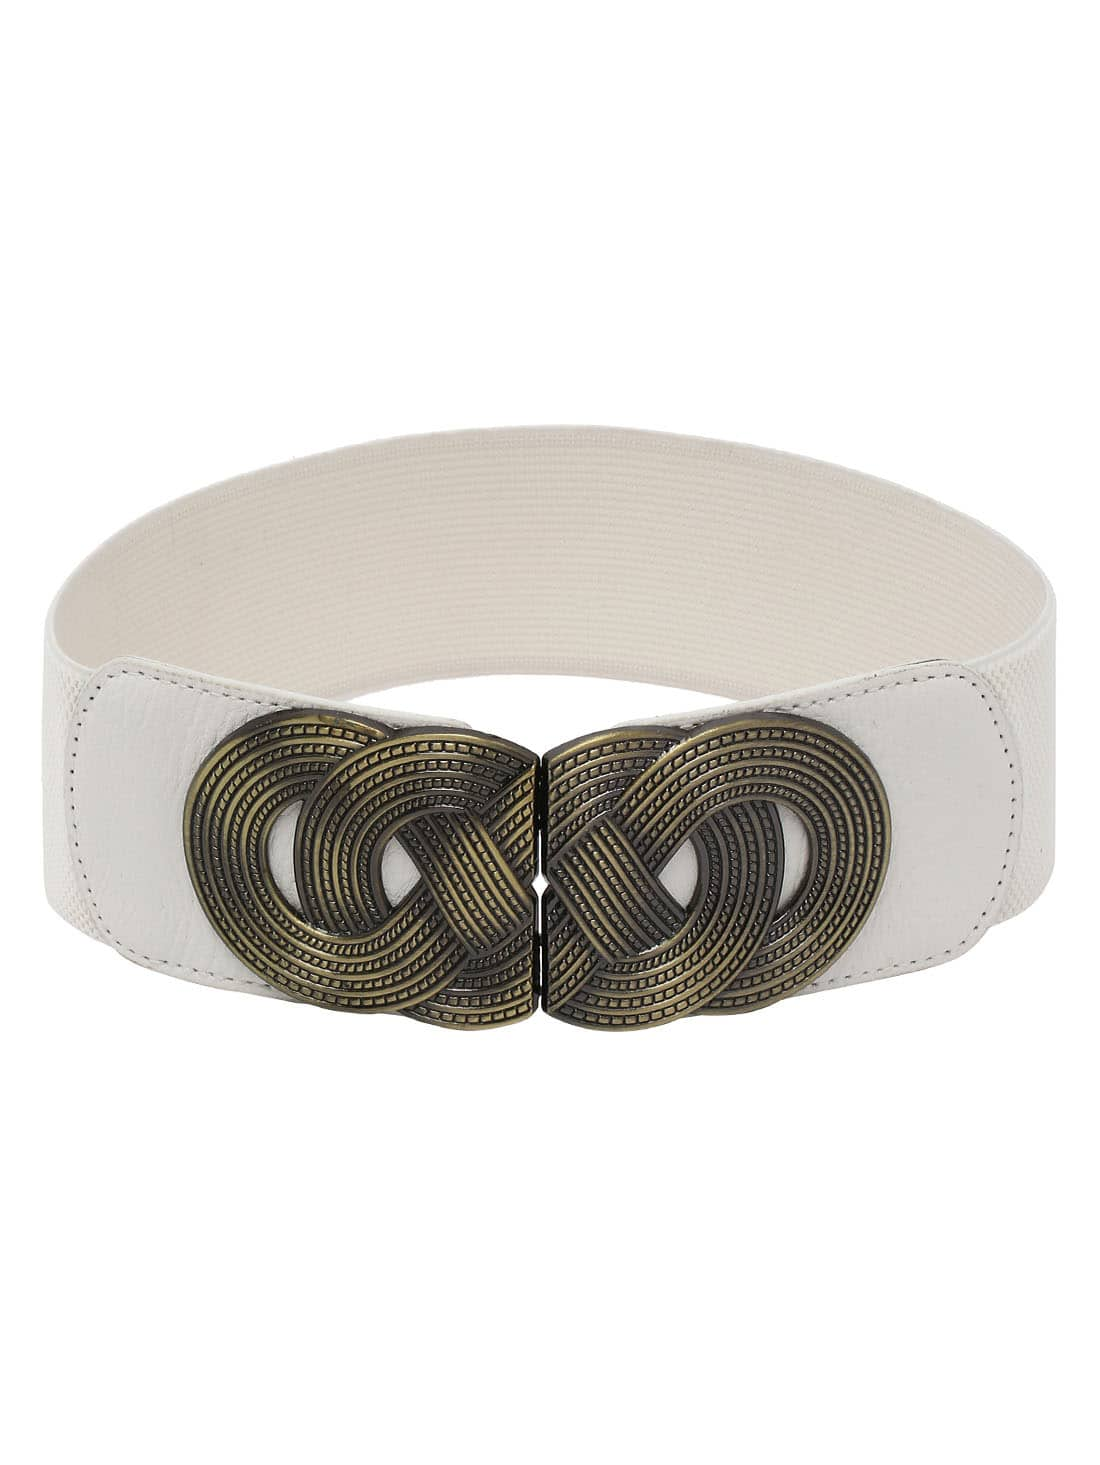 braided metal interlock buckle white wide elastic belt